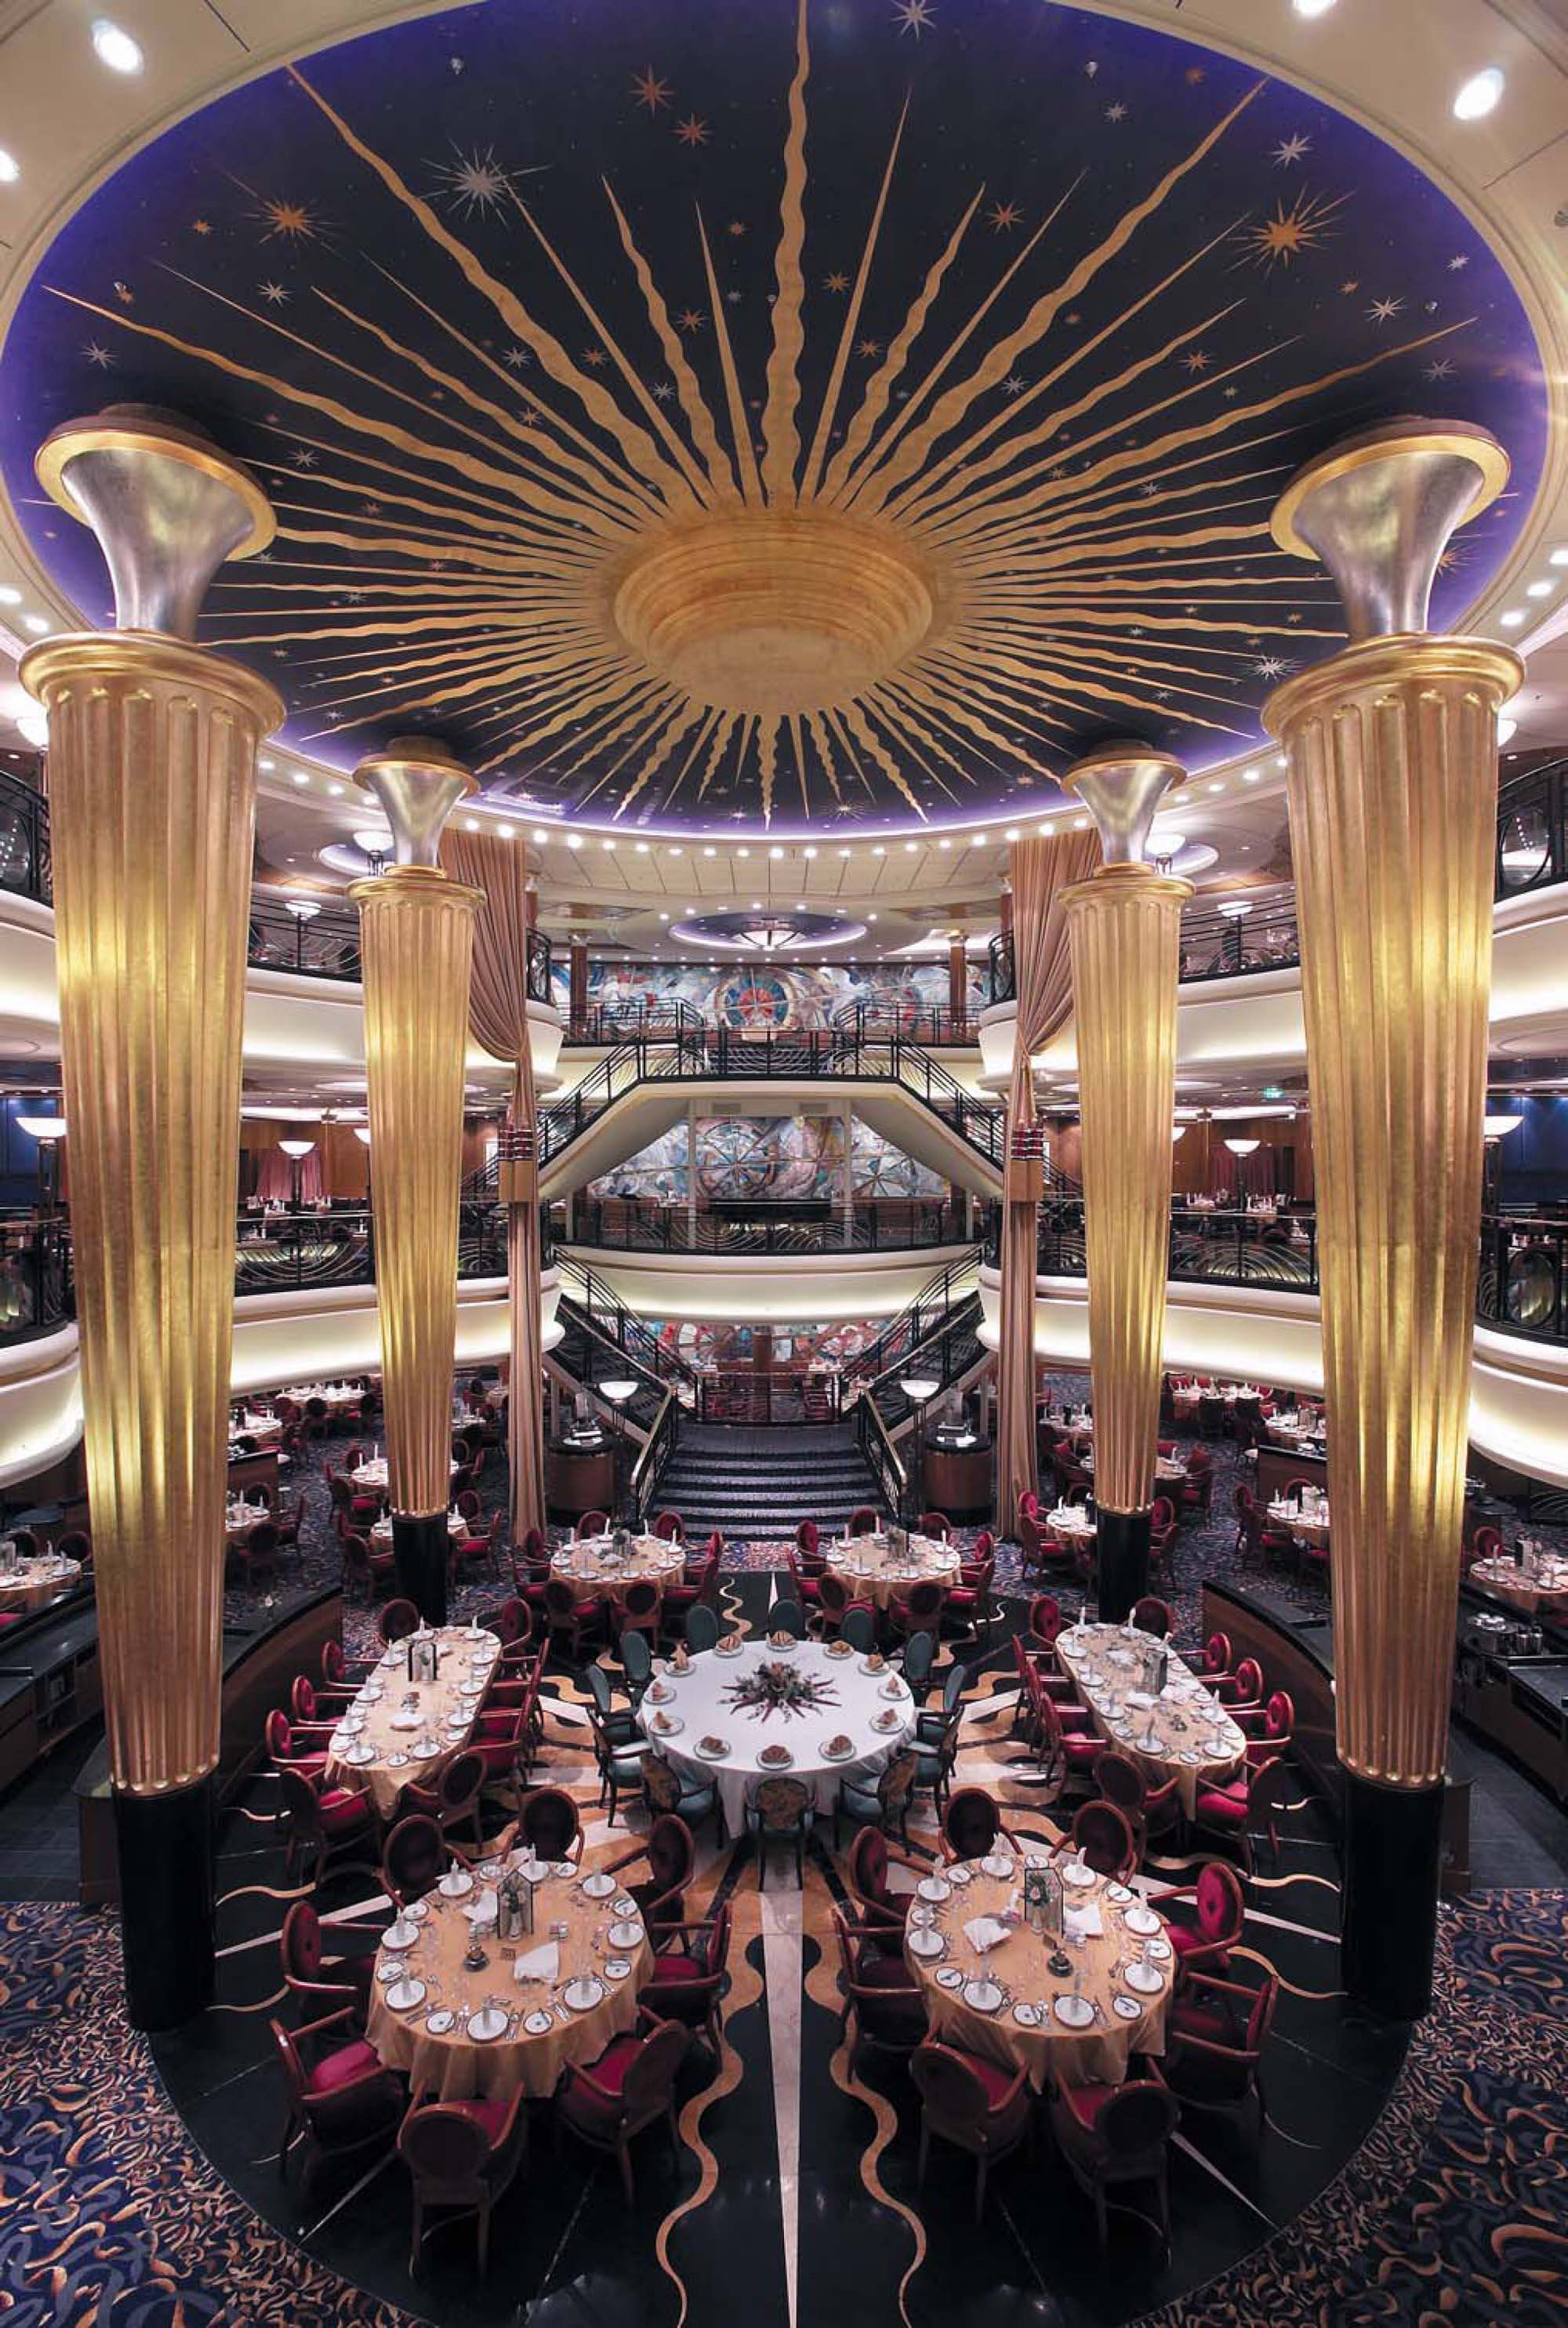 Design Beauty  Main dining room on Royal Caribbean s Explorer of the Seas. Design Beauty  Main dining room on Royal Caribbean s Explorer of